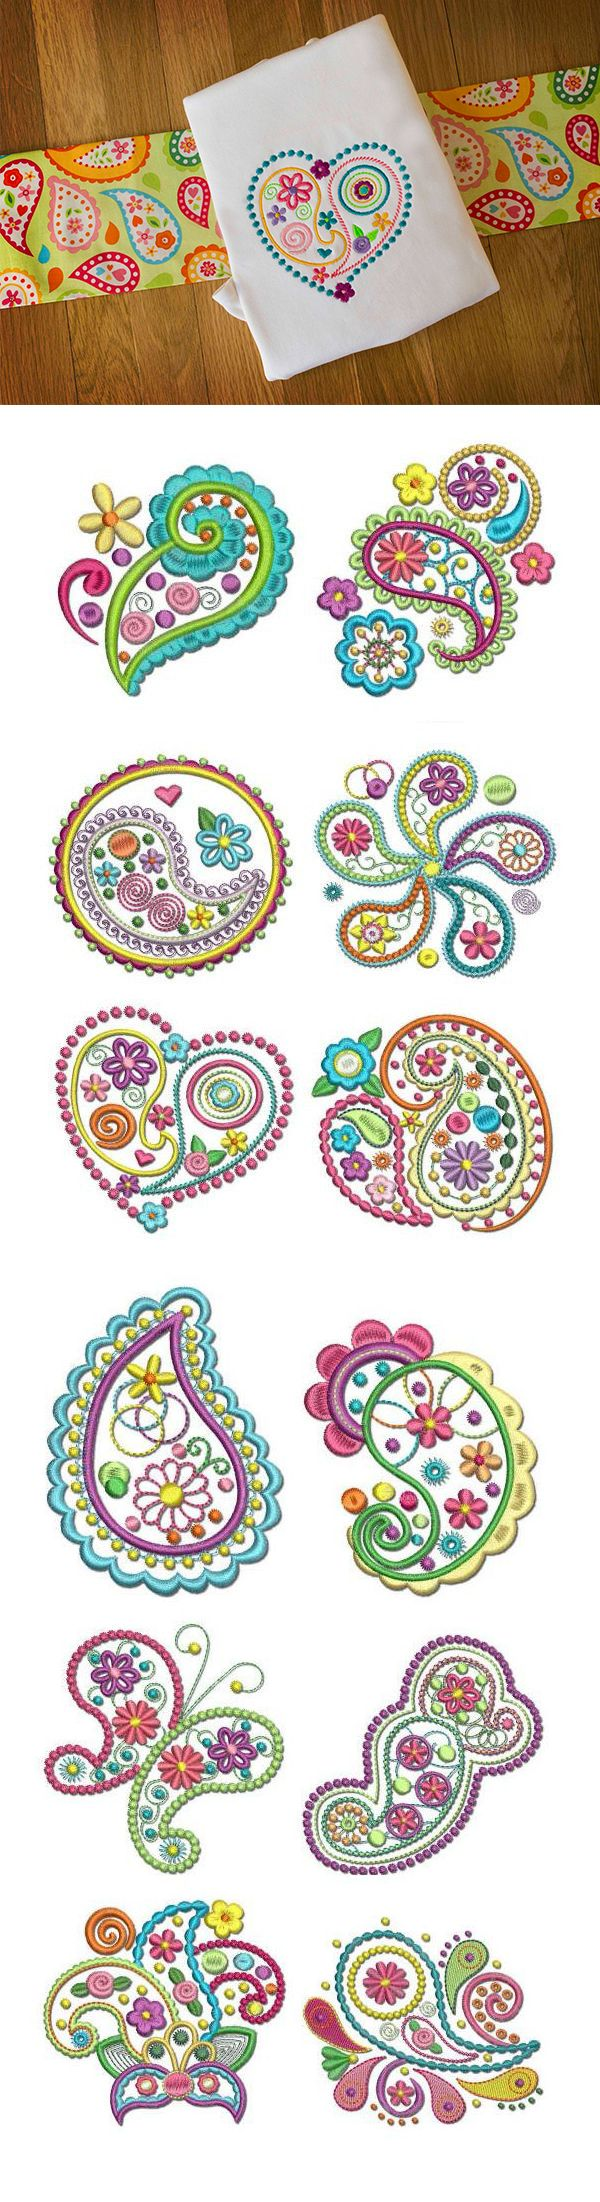 Crazy for Paisley design set is available for Instant Download at designsbyjuju.com                                                                                                                                                     More